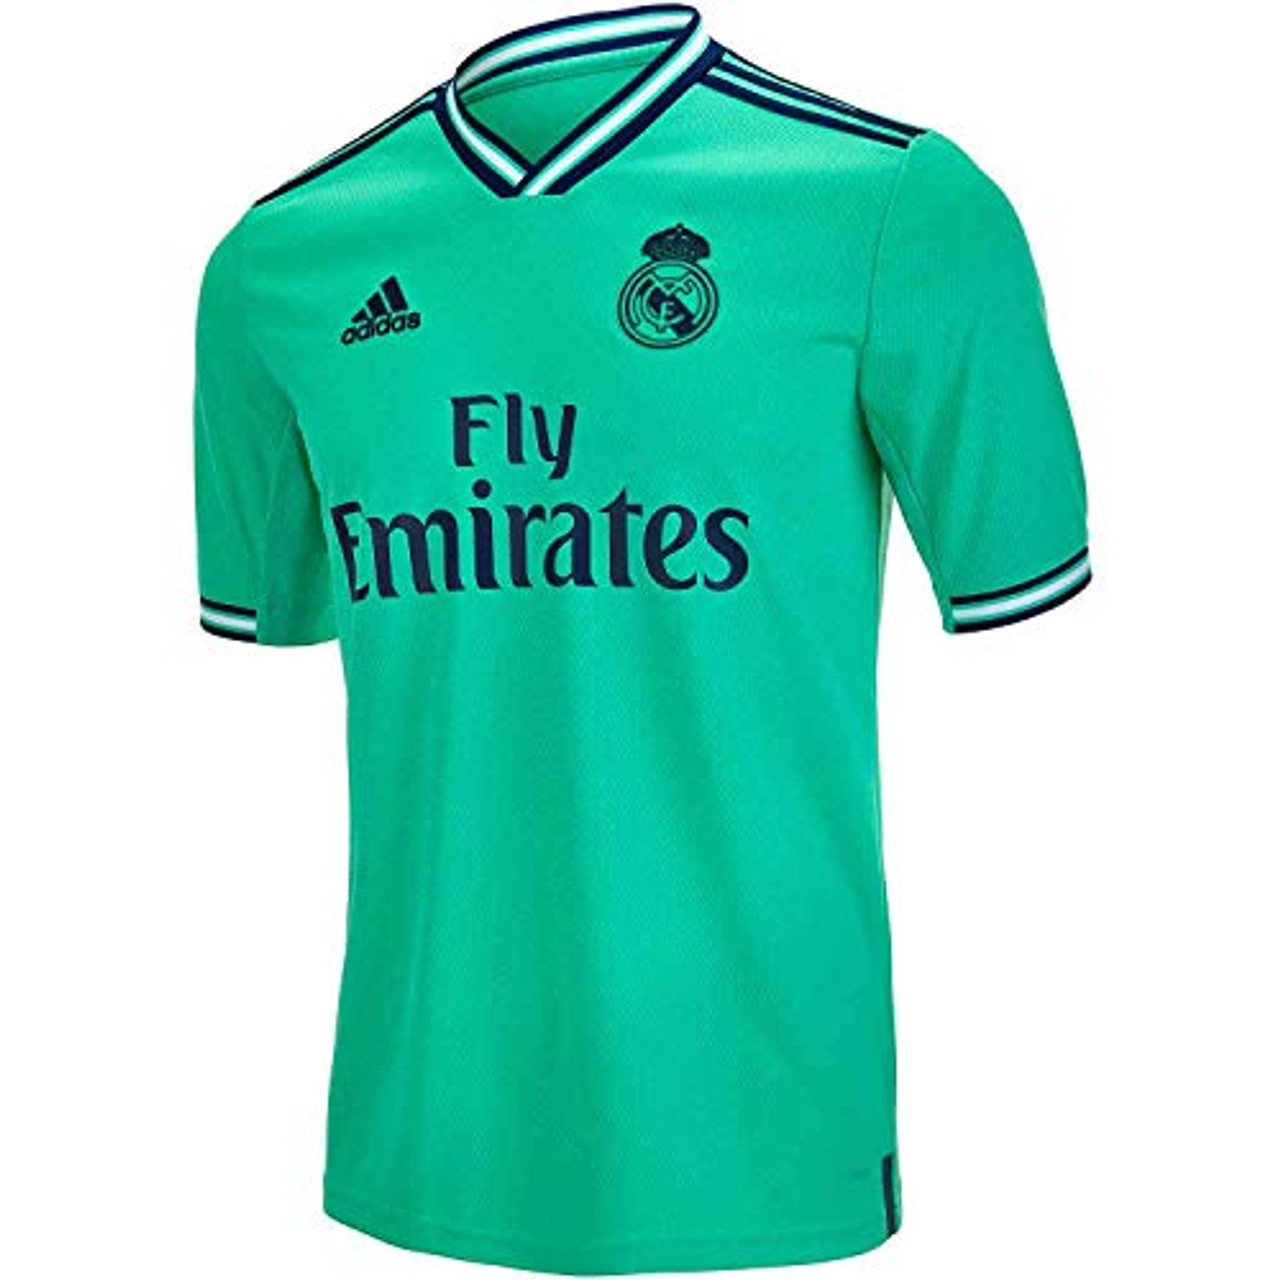 ADIDAS REAL MADRID 2020 3RD JERSEY MINT GREEN